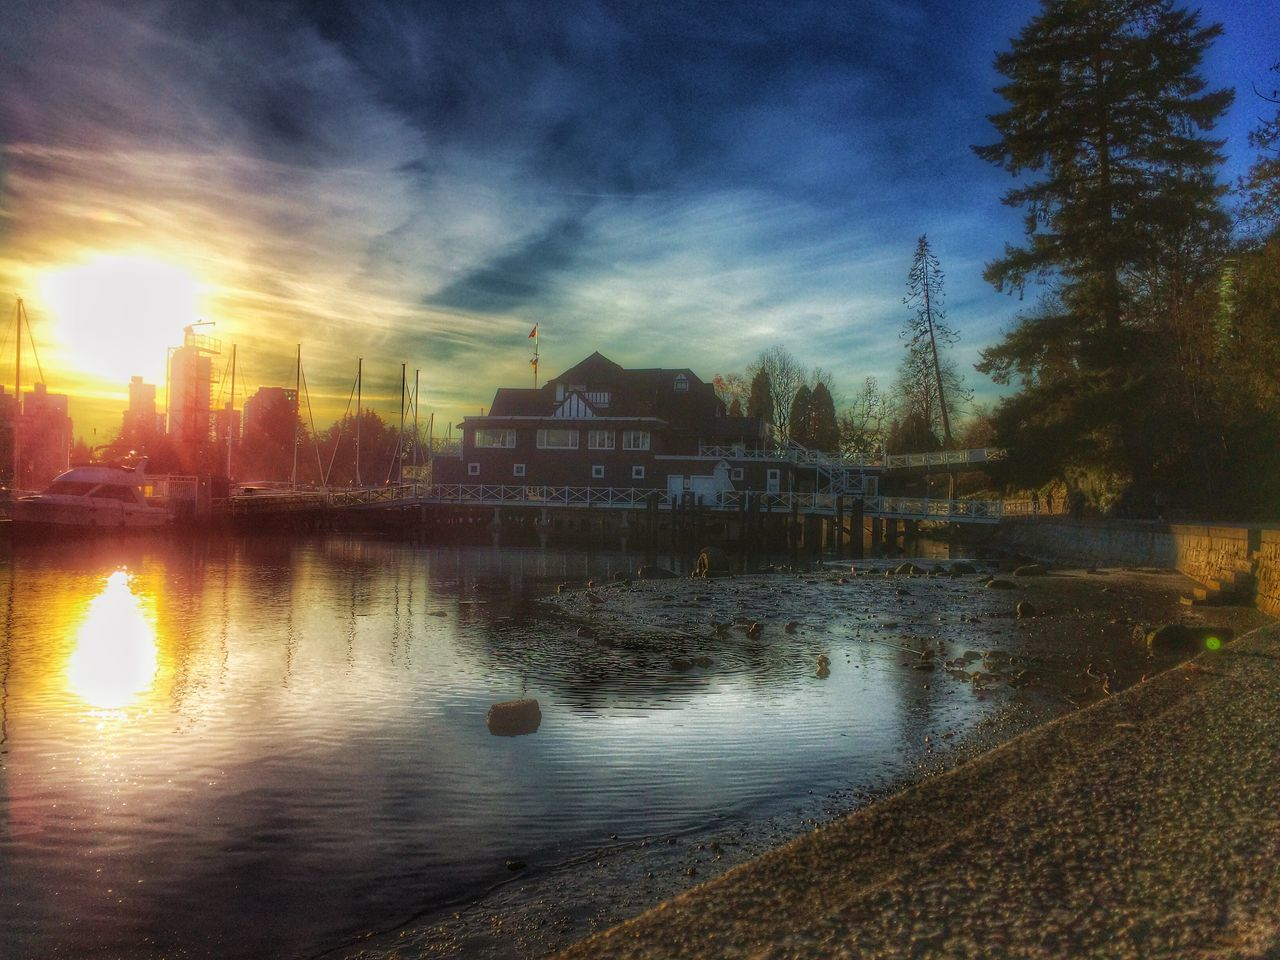 built structure, architecture, building exterior, water, reflection, sunset, tree, house, sky, no people, tranquility, tranquil scene, outdoors, nature, scenics, beauty in nature, day